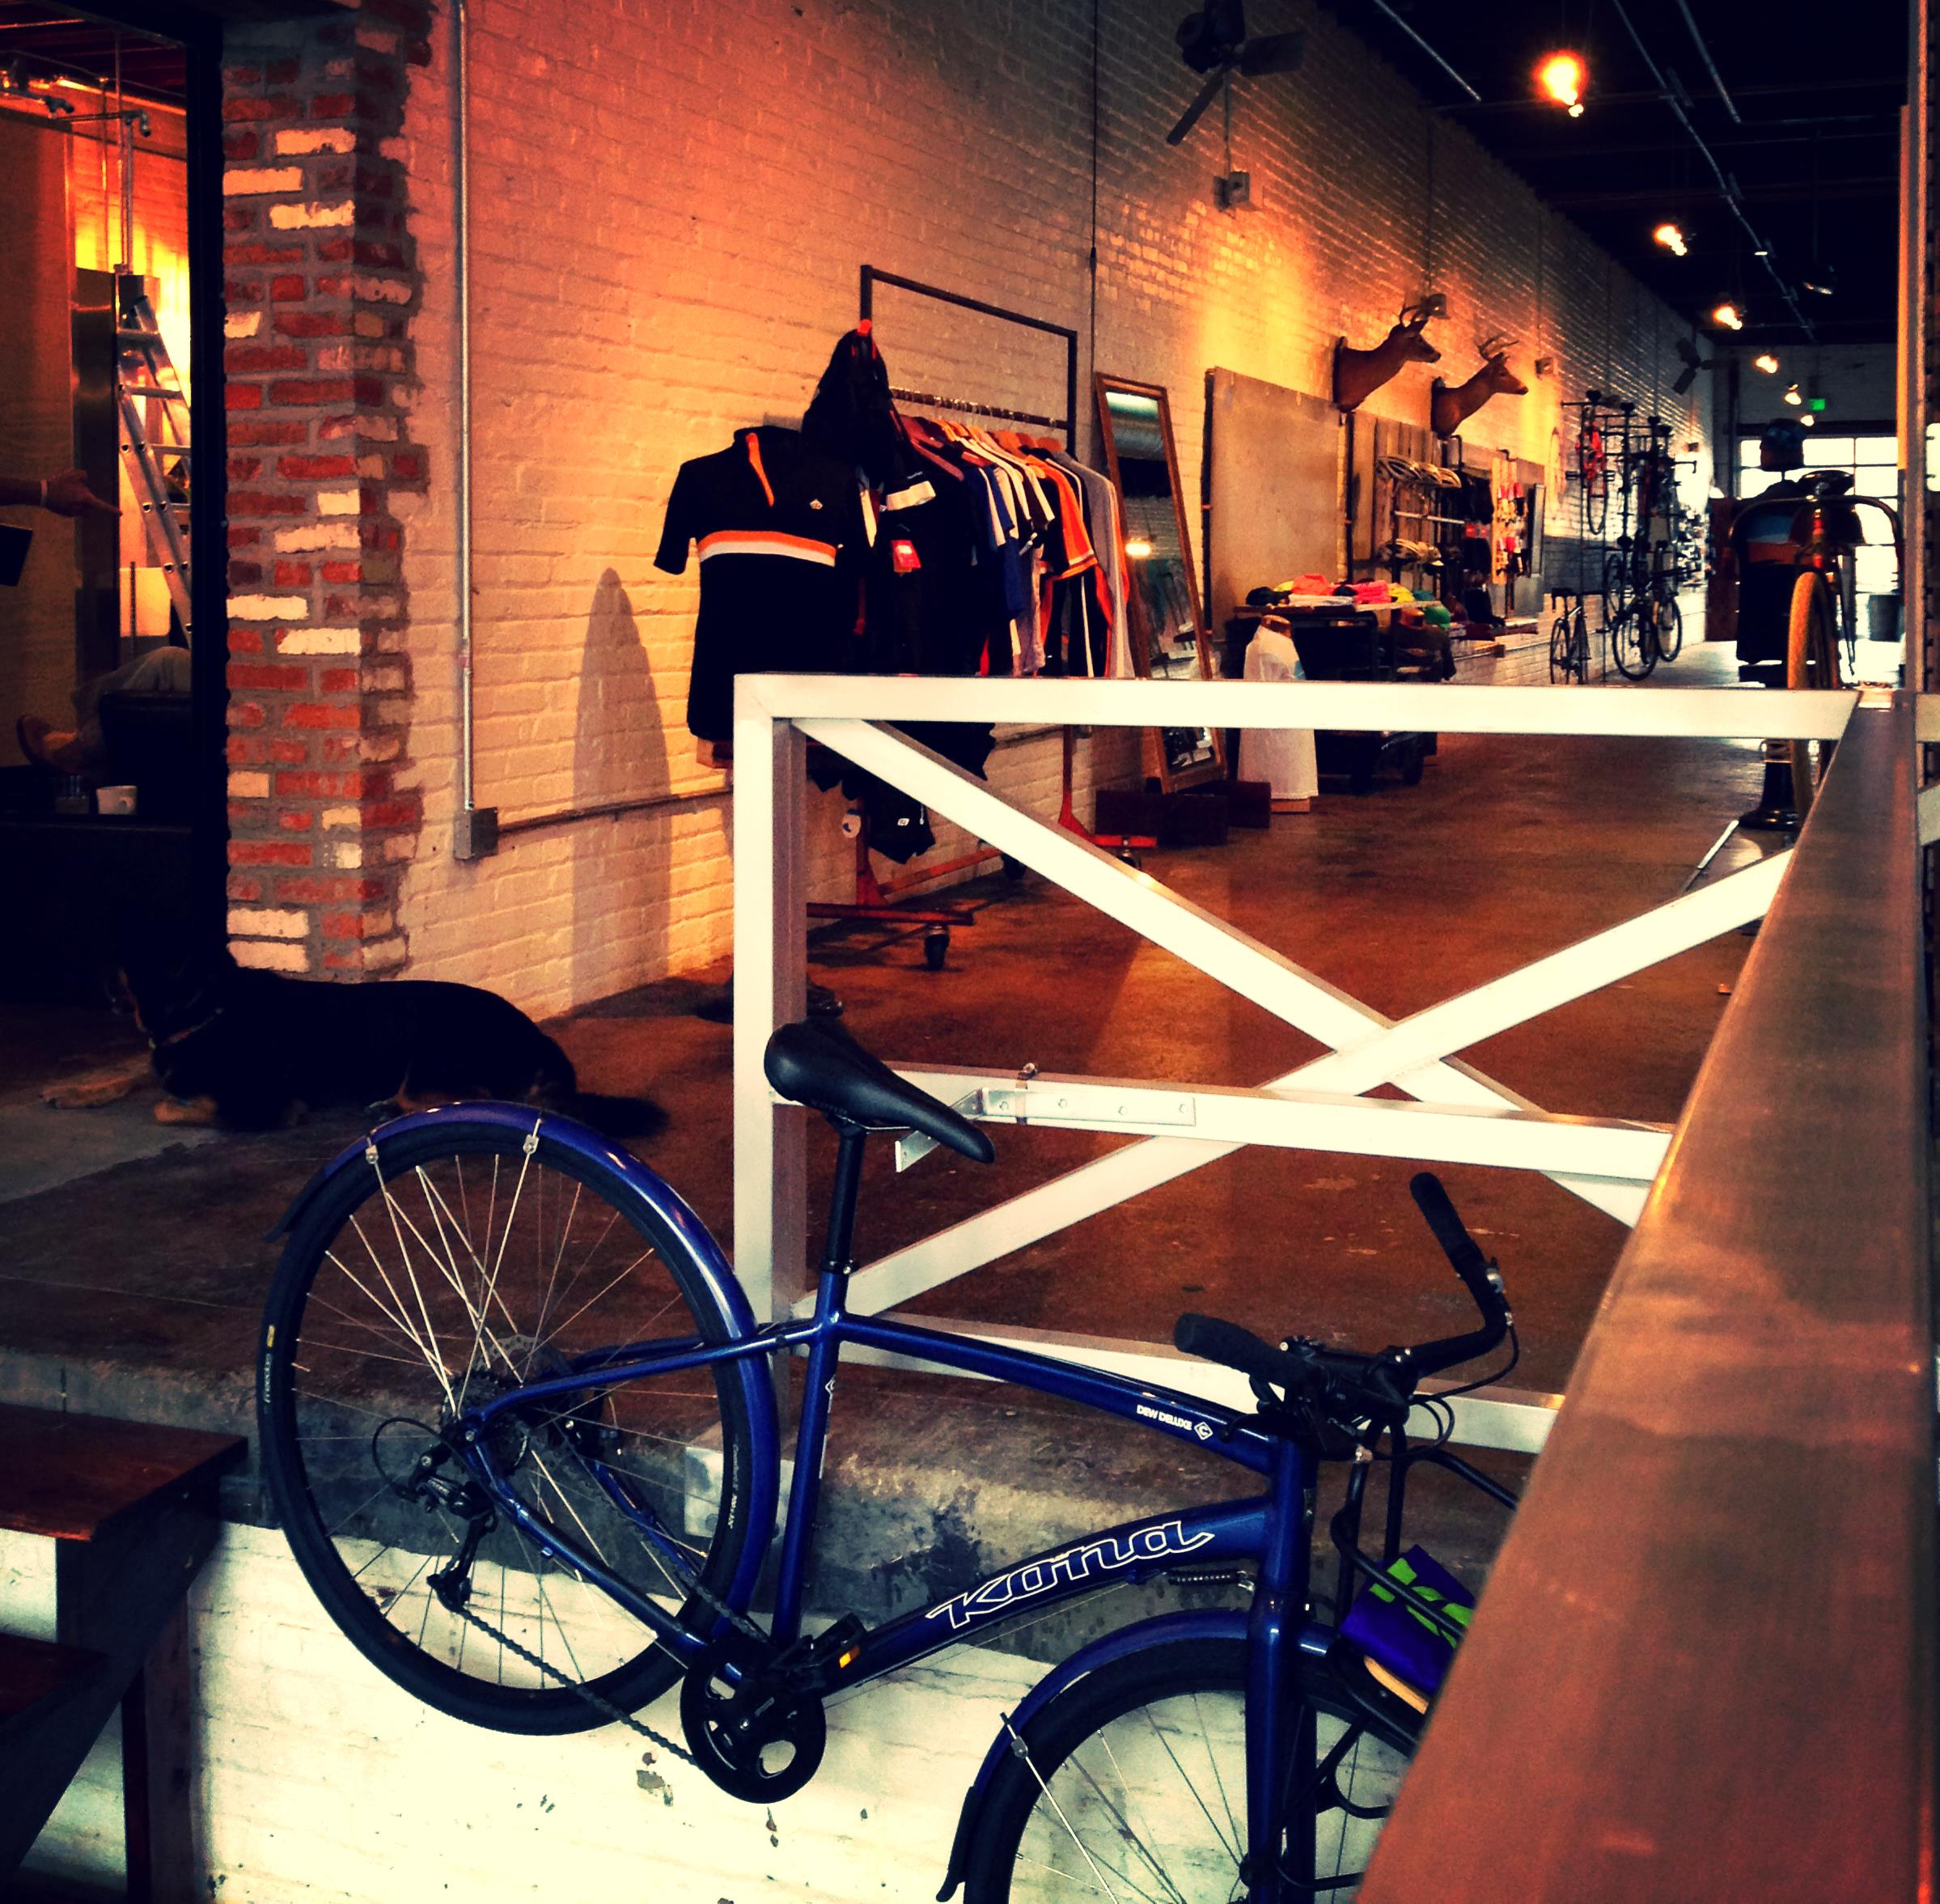 Richmond Bicycle Studio - one earned revenue arm of RCC.